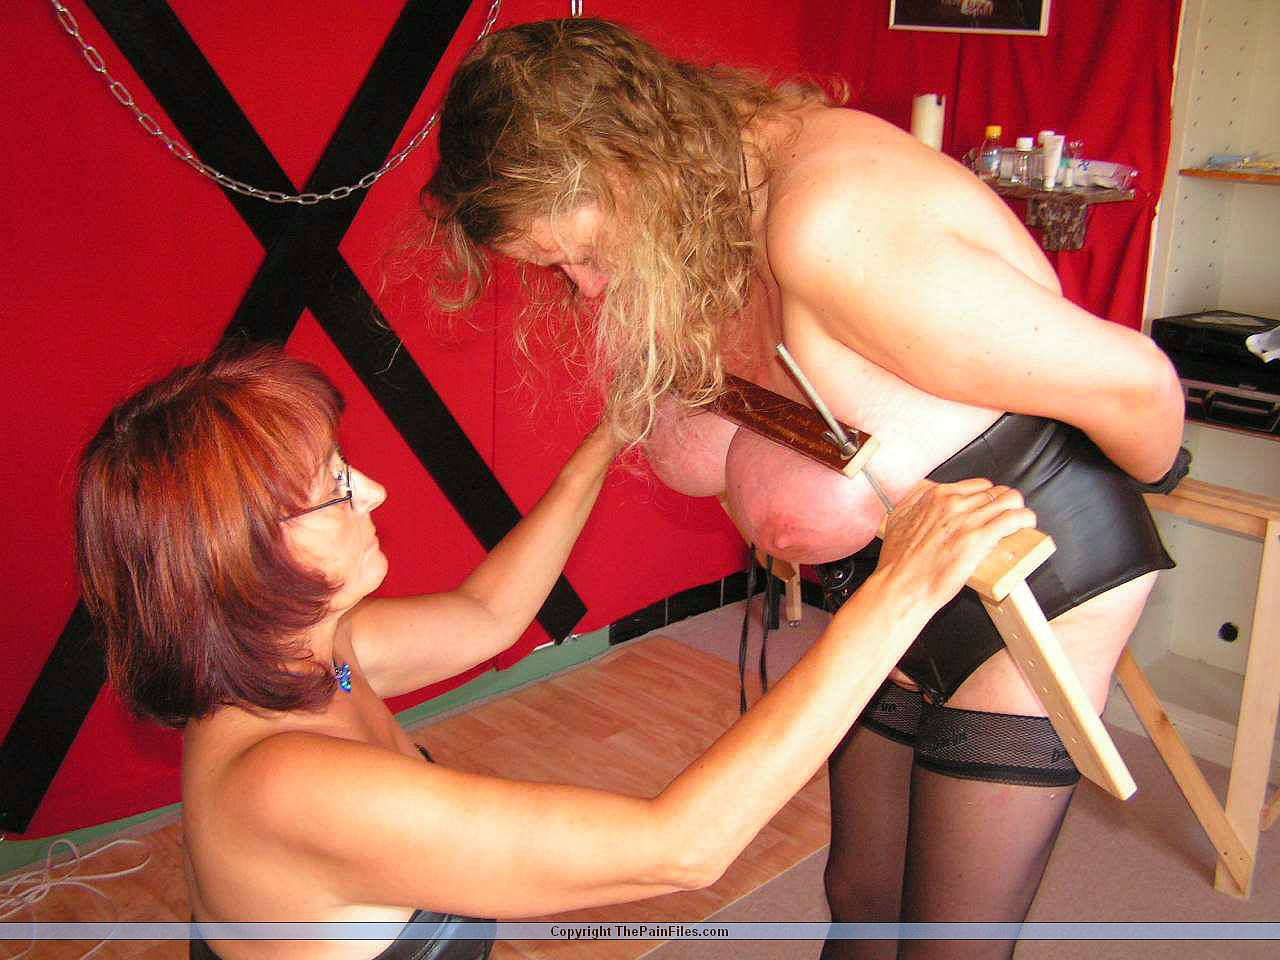 Boobie bdsm with amateur small boobed subbie 2